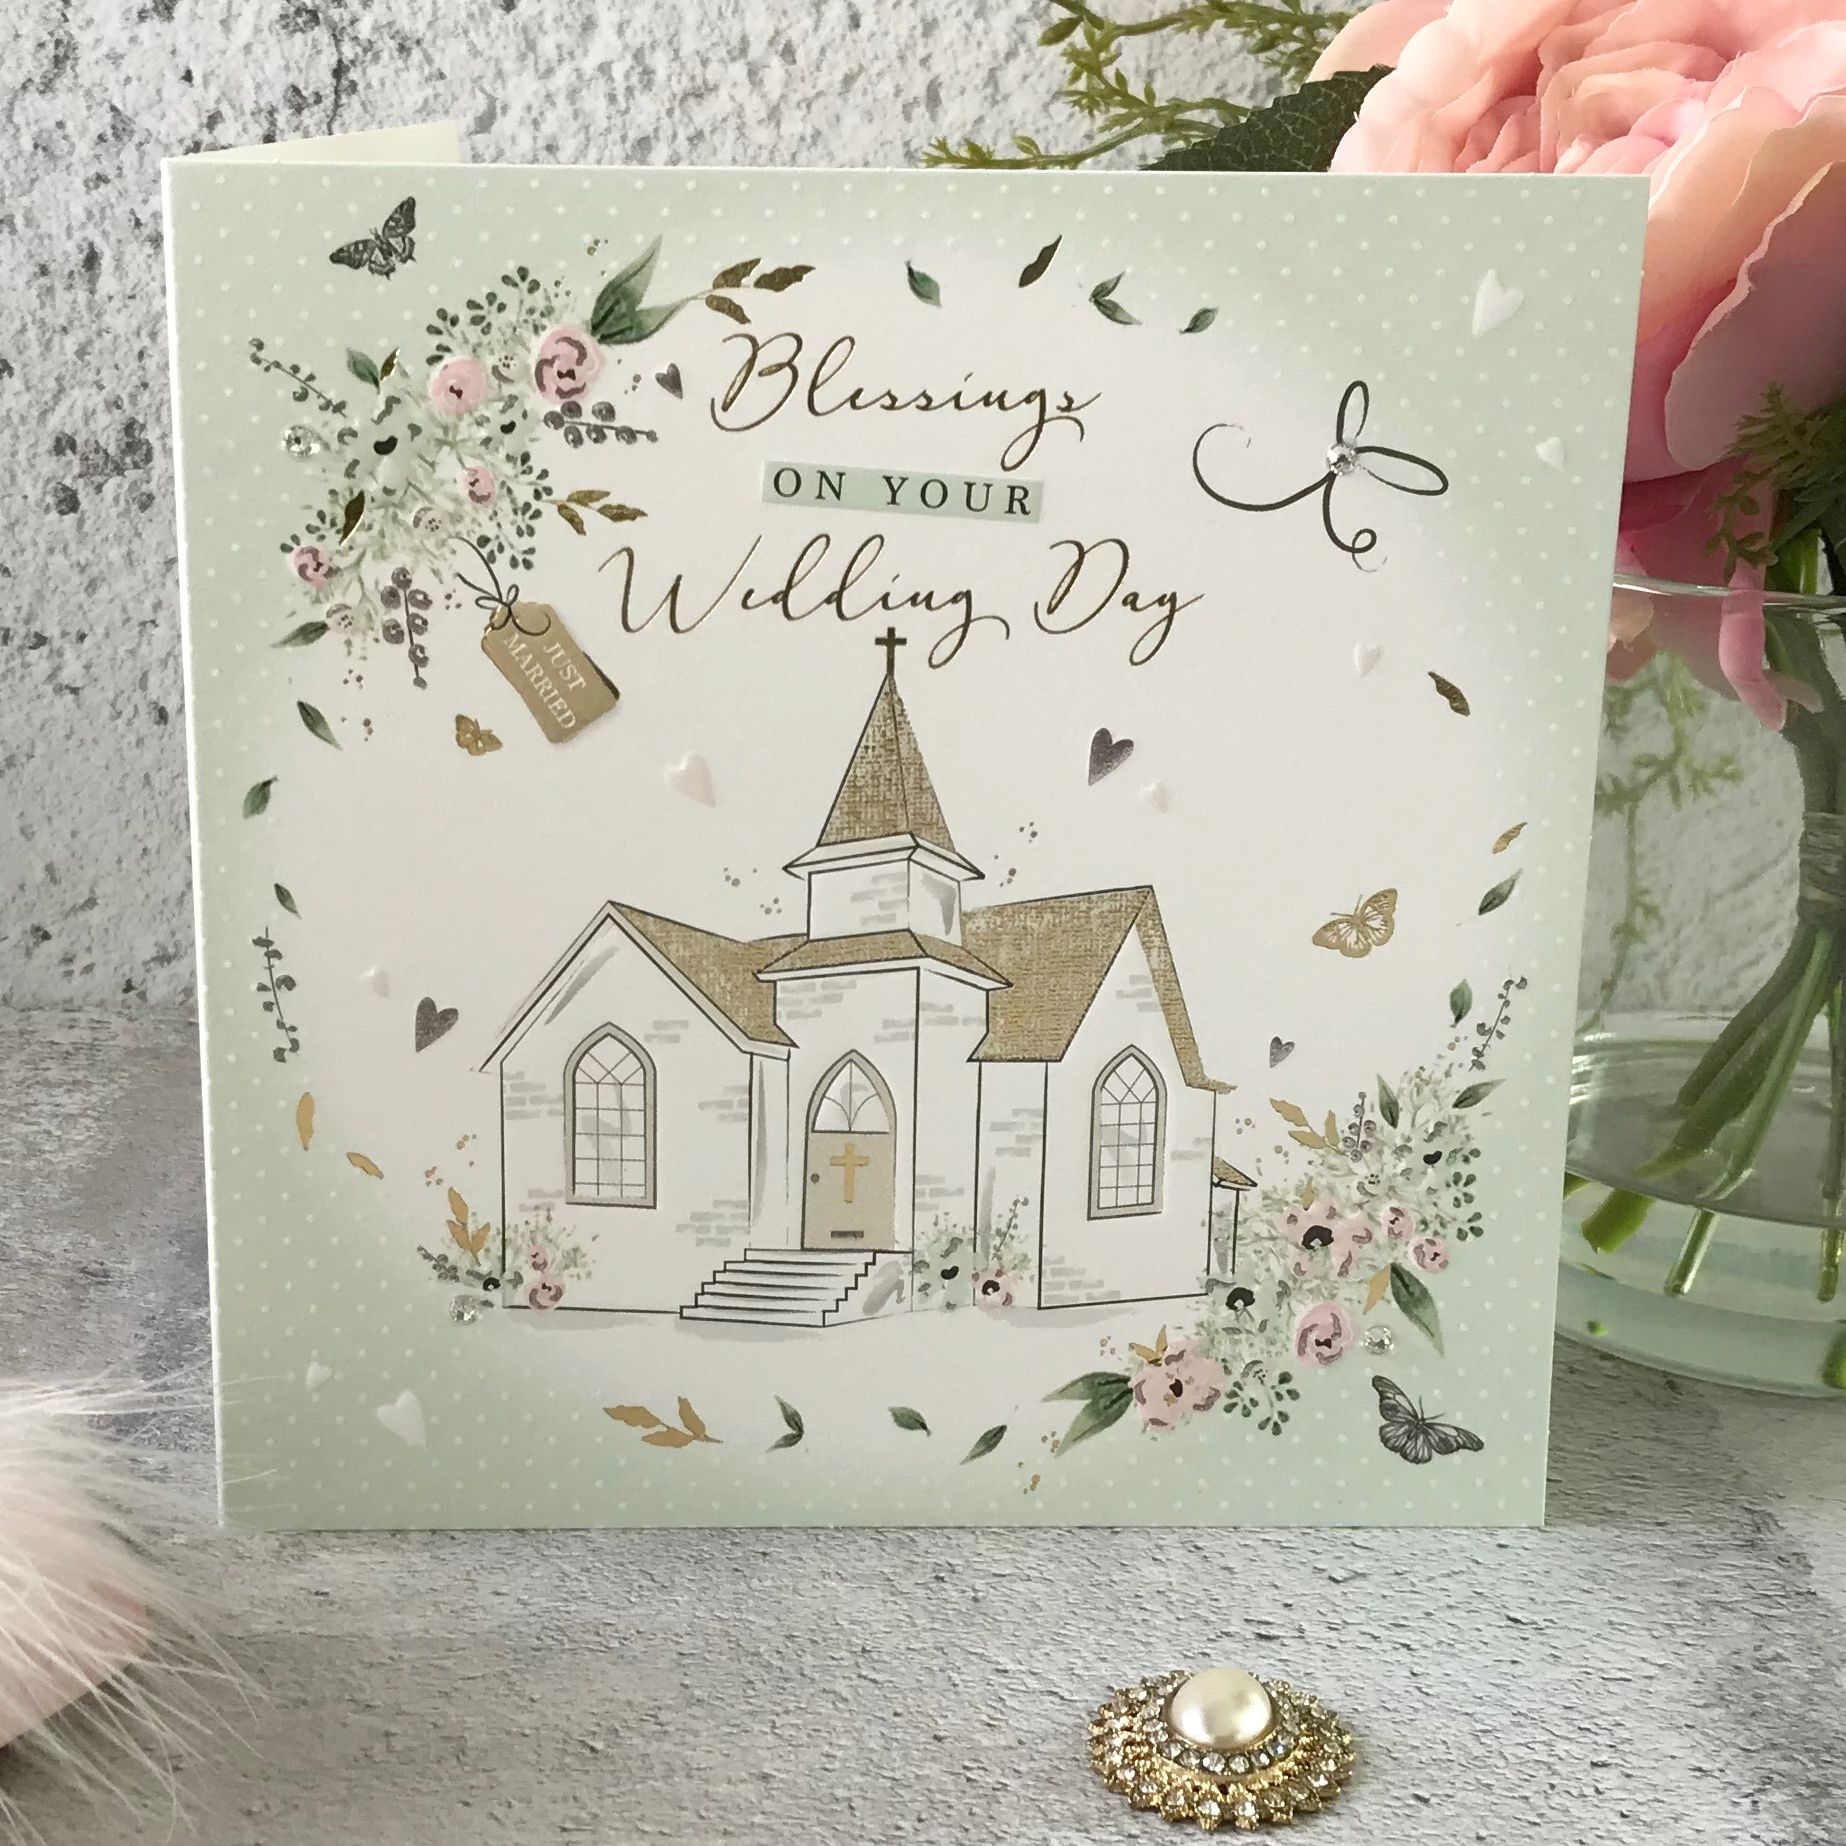 To the new Mr and Mrs on your Wedding Day Cake Handfinished Wedding Card